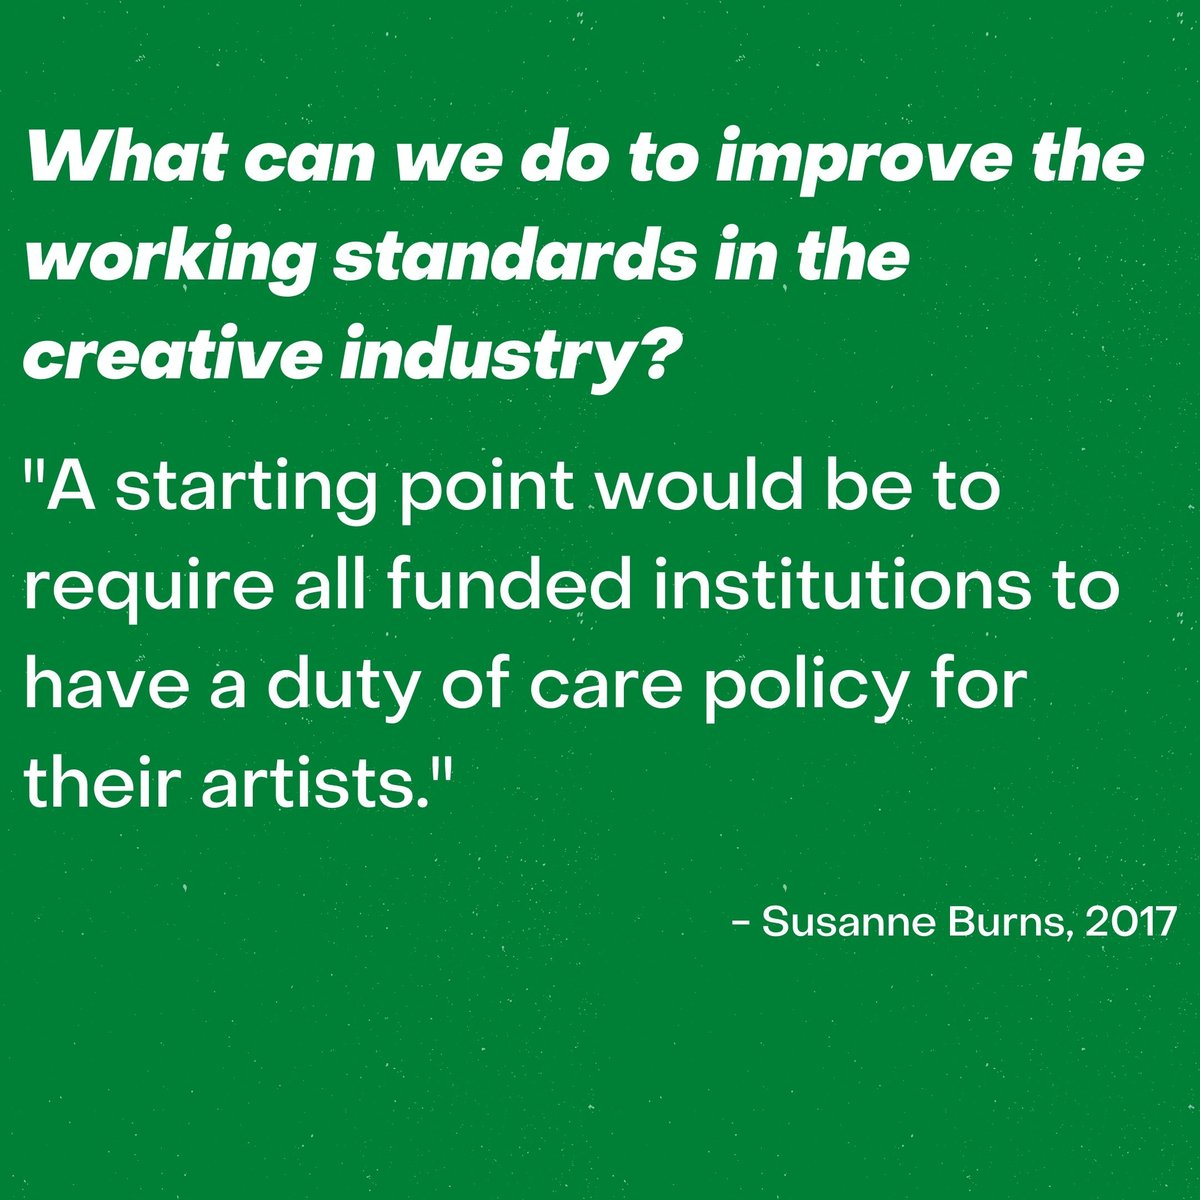 When we started this movement one of our suggestions was to ensure that event producers are DBS checked and/or trained in safeguarding. Policies like this would create a safer working environment for artists and staff, and this is exactly what we need!pic.twitter.com/b5mTs7QO9N